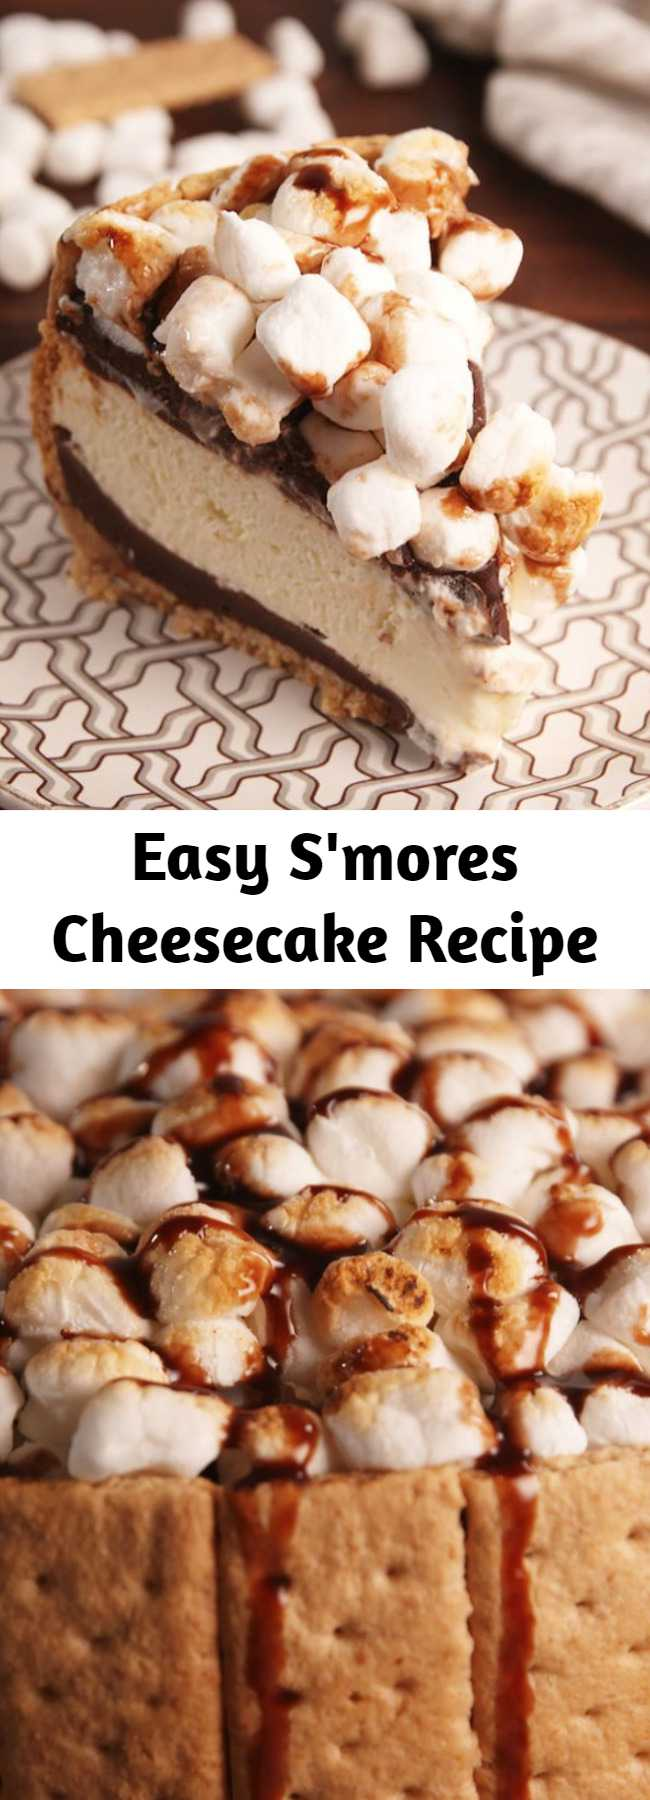 Easy S'mores Cheesecake Recipe - S'mores make everything better, even cheesecake. Take the camping party indoors with this s'mores cheesecake.